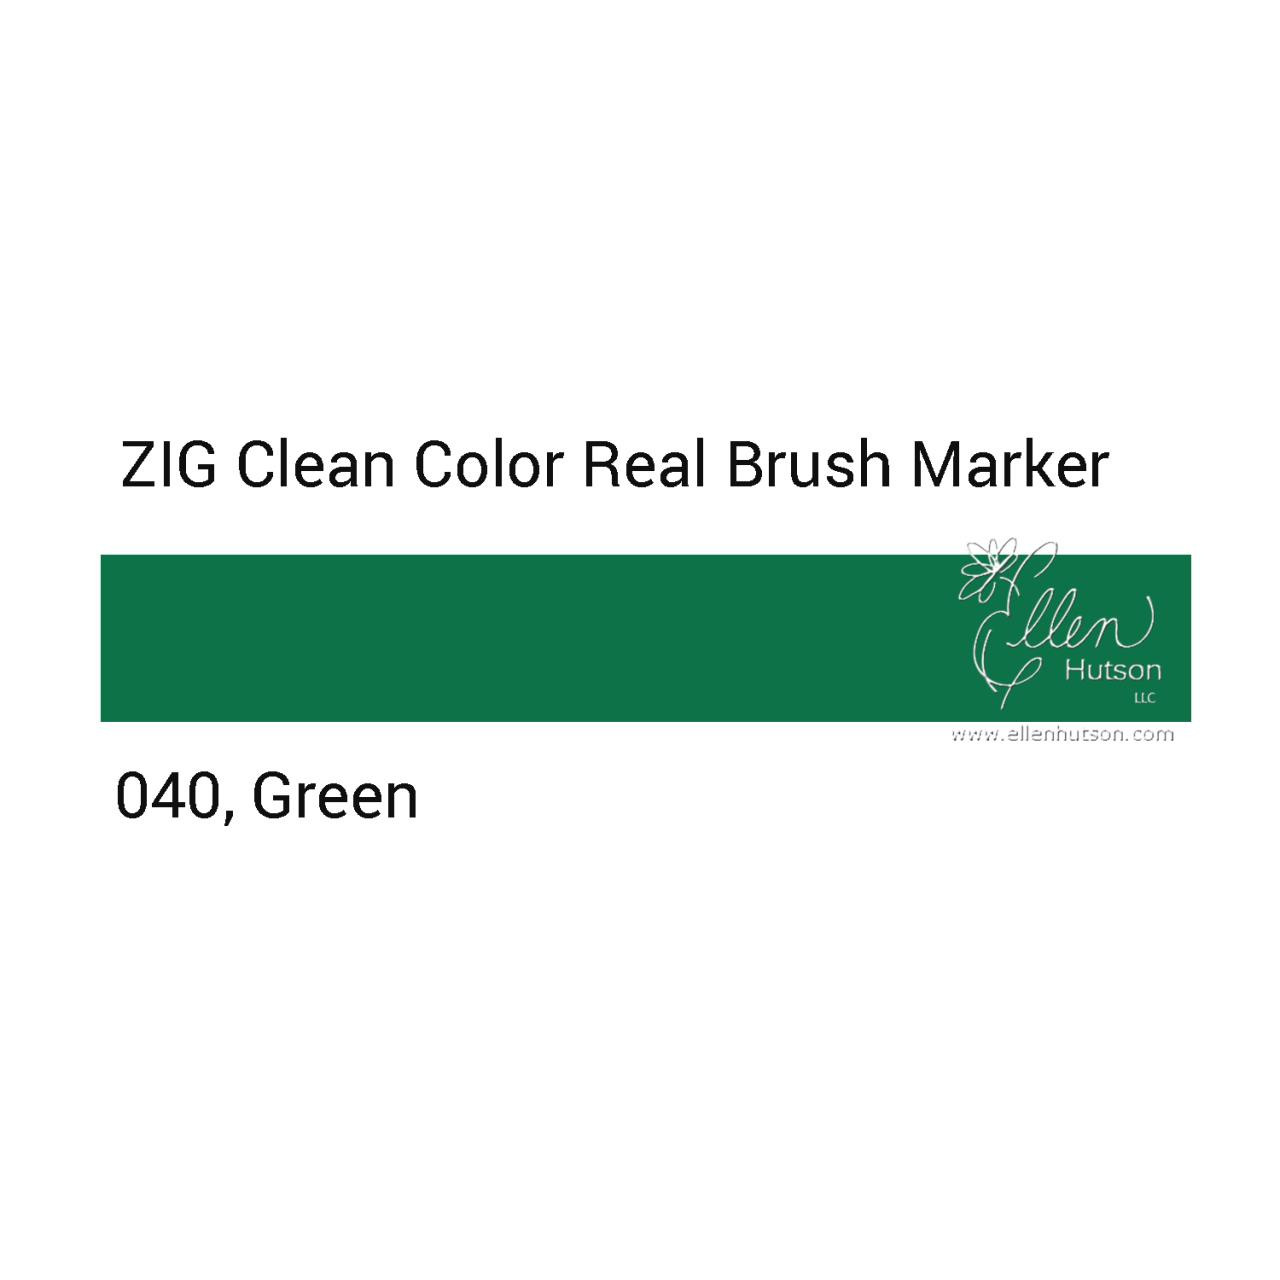 040 - Green, ZIG Clean Color Real Brush Marker -